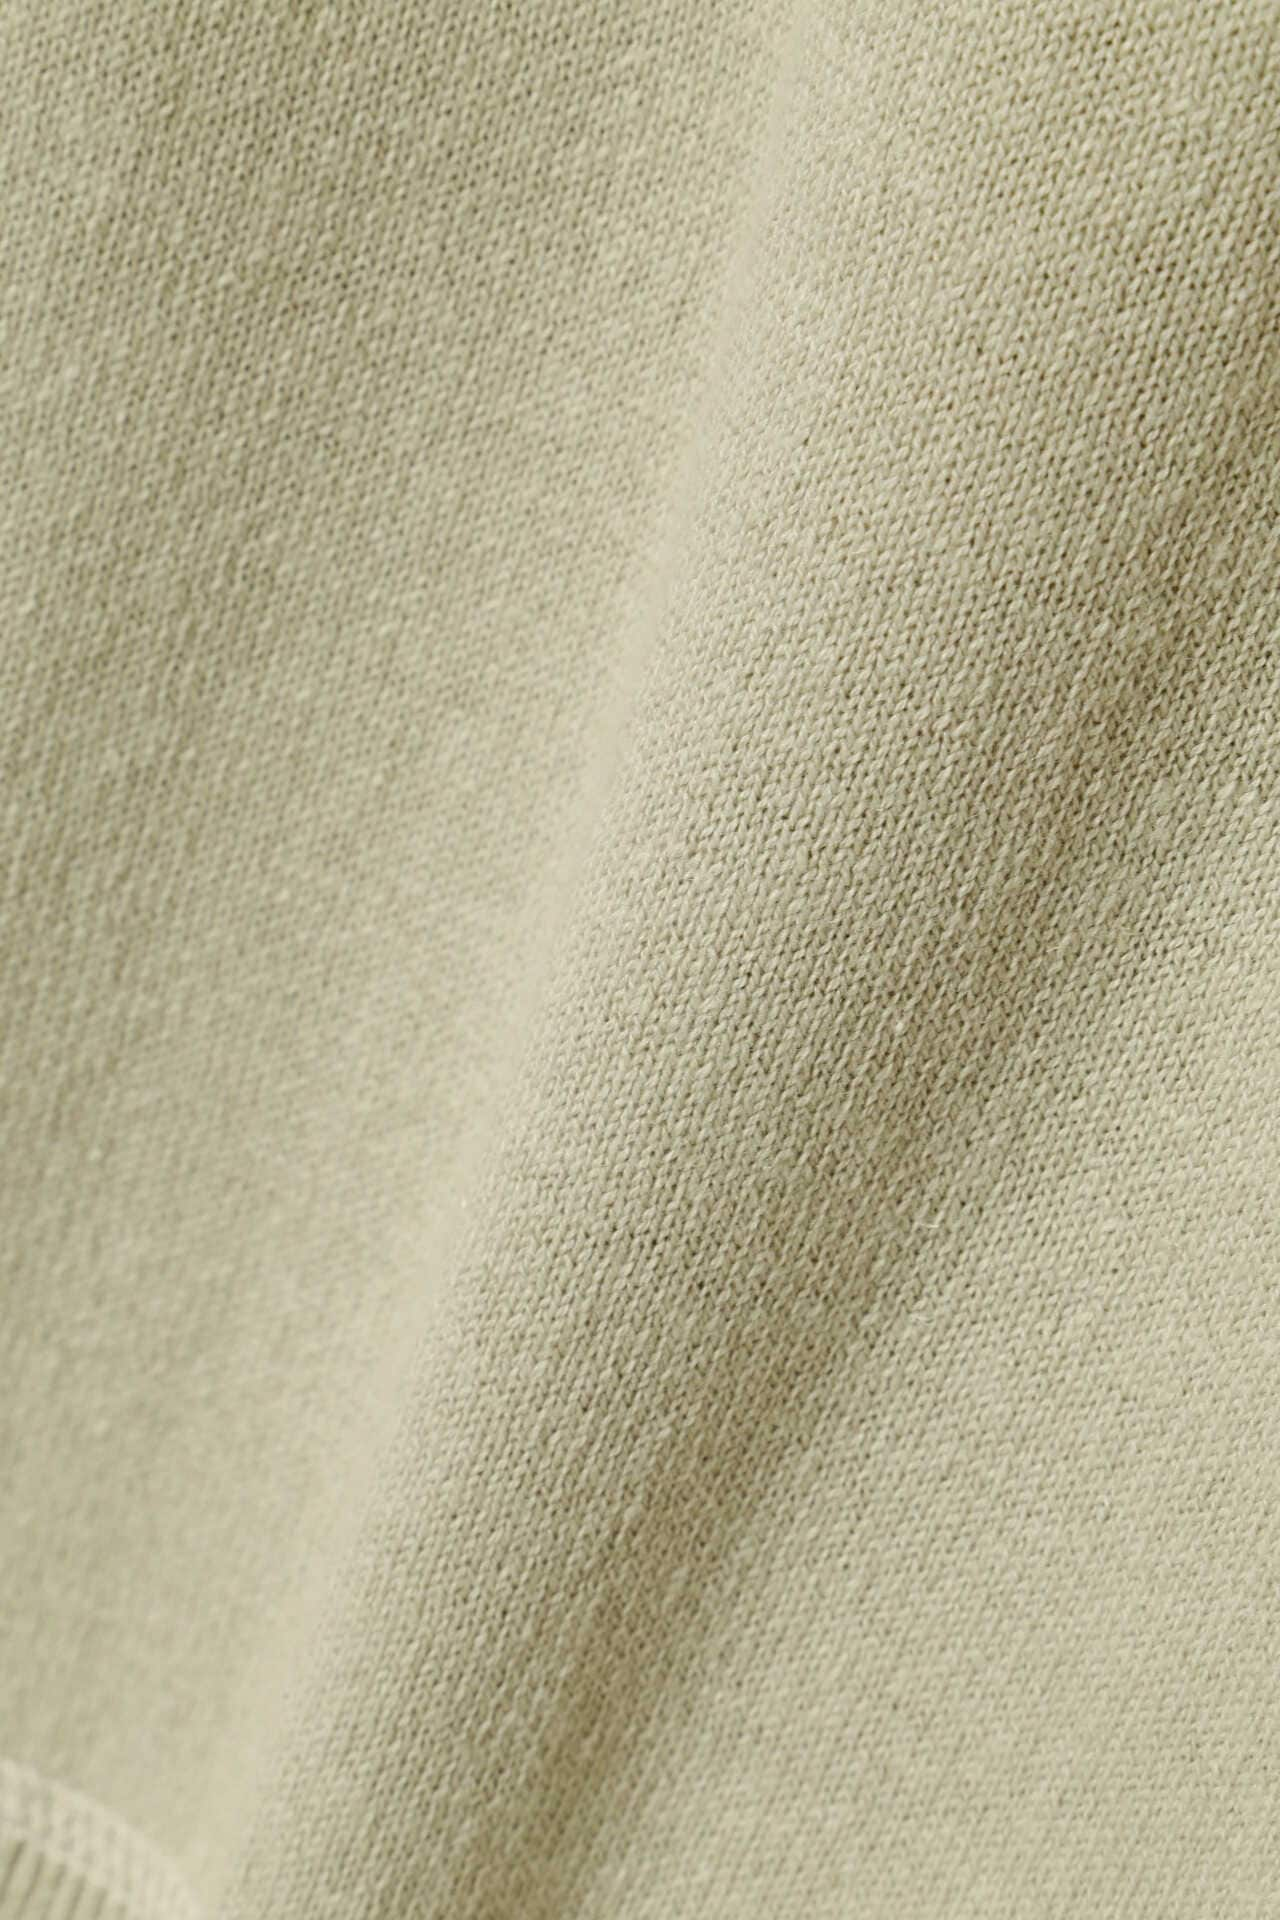 FINE SLUB COTTON LINEN9